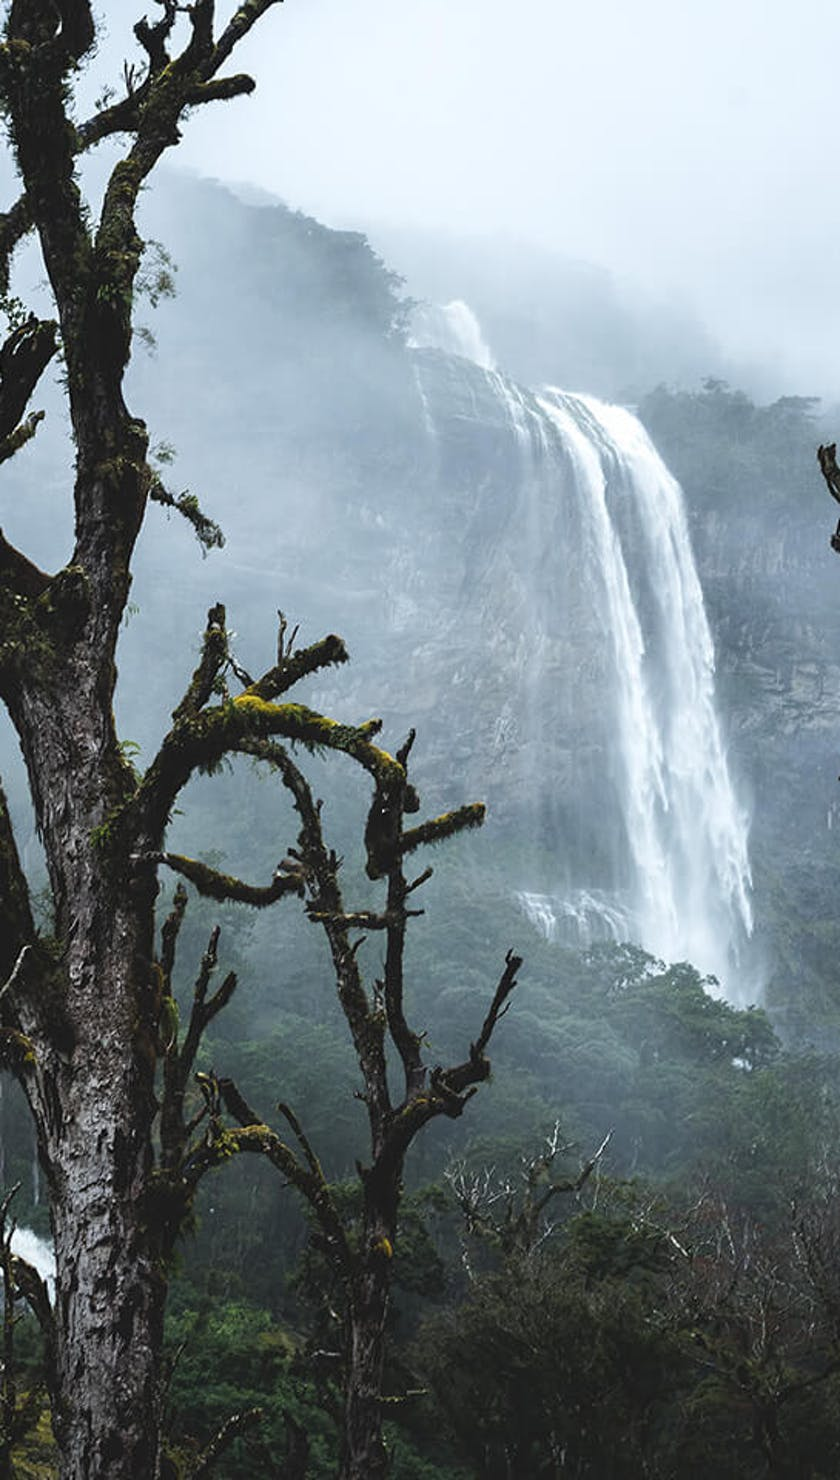 Moss covered trees and fog frame a distant waterfall in the background